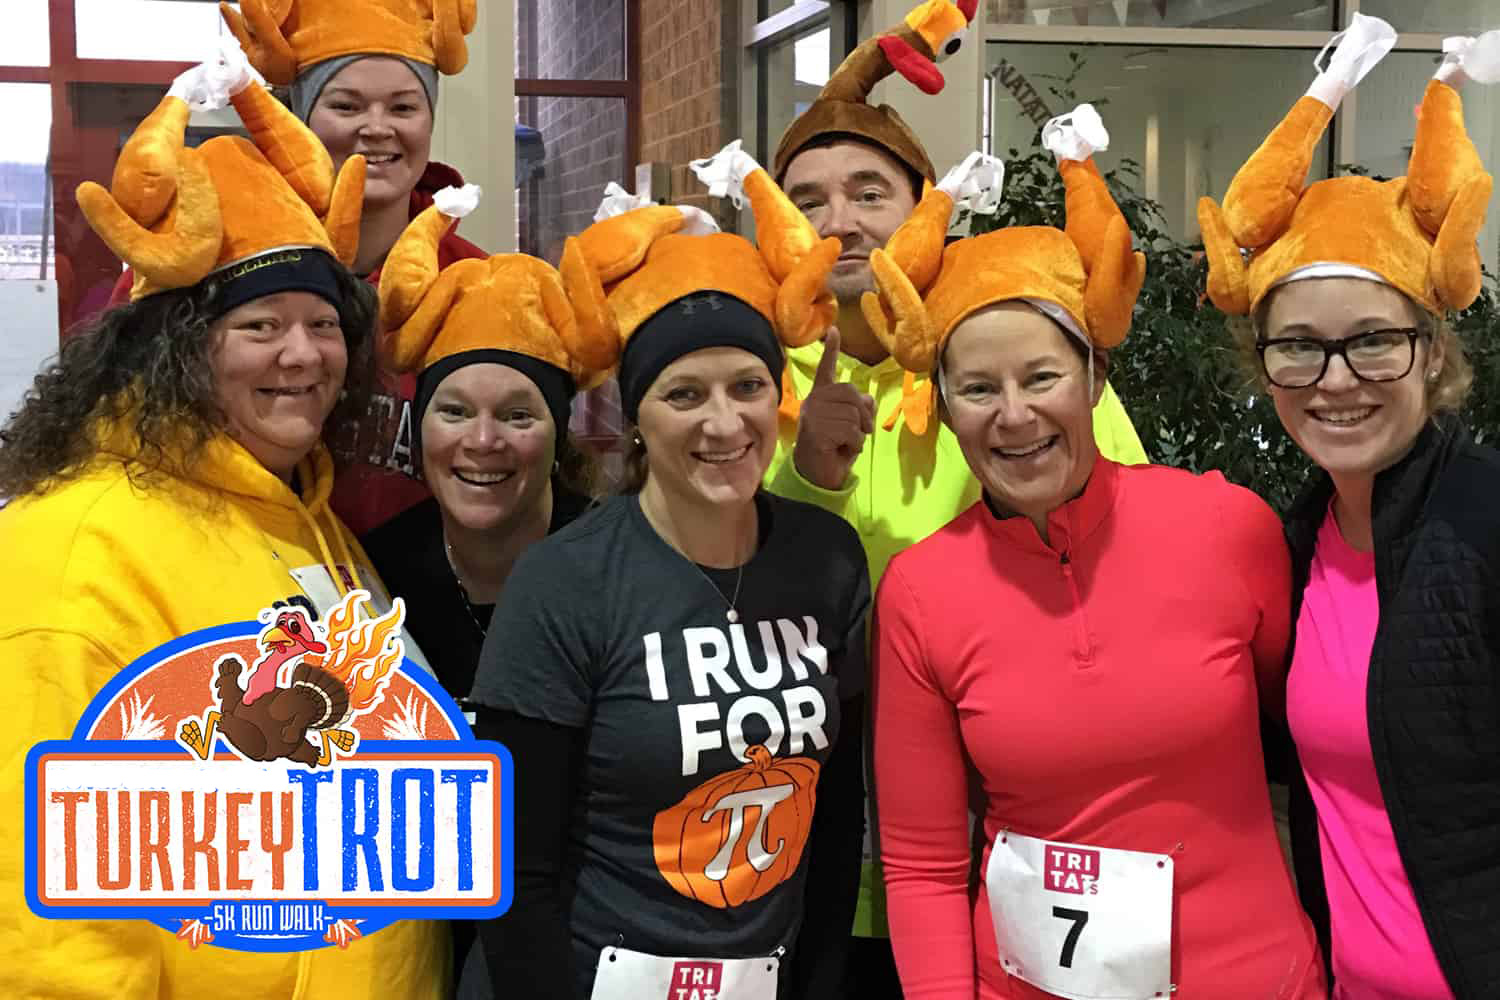 Turkey trot participants wearing turkey hats